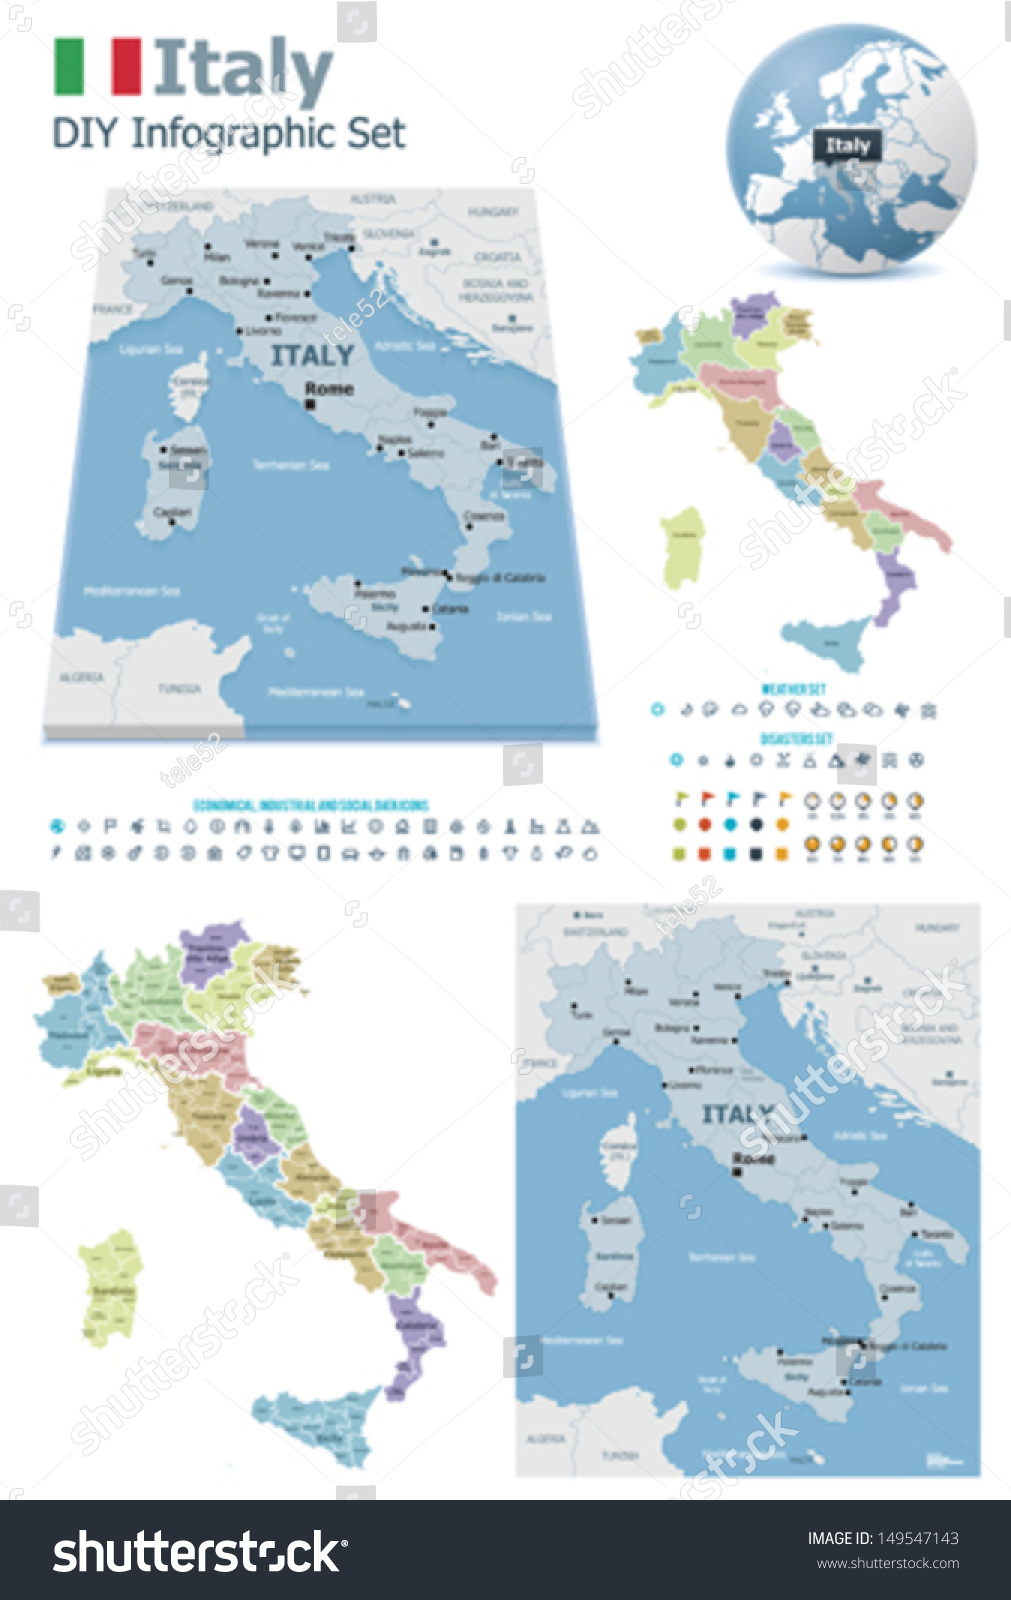 Vector Italy Political Administrative Divisions Maps Stock Vector